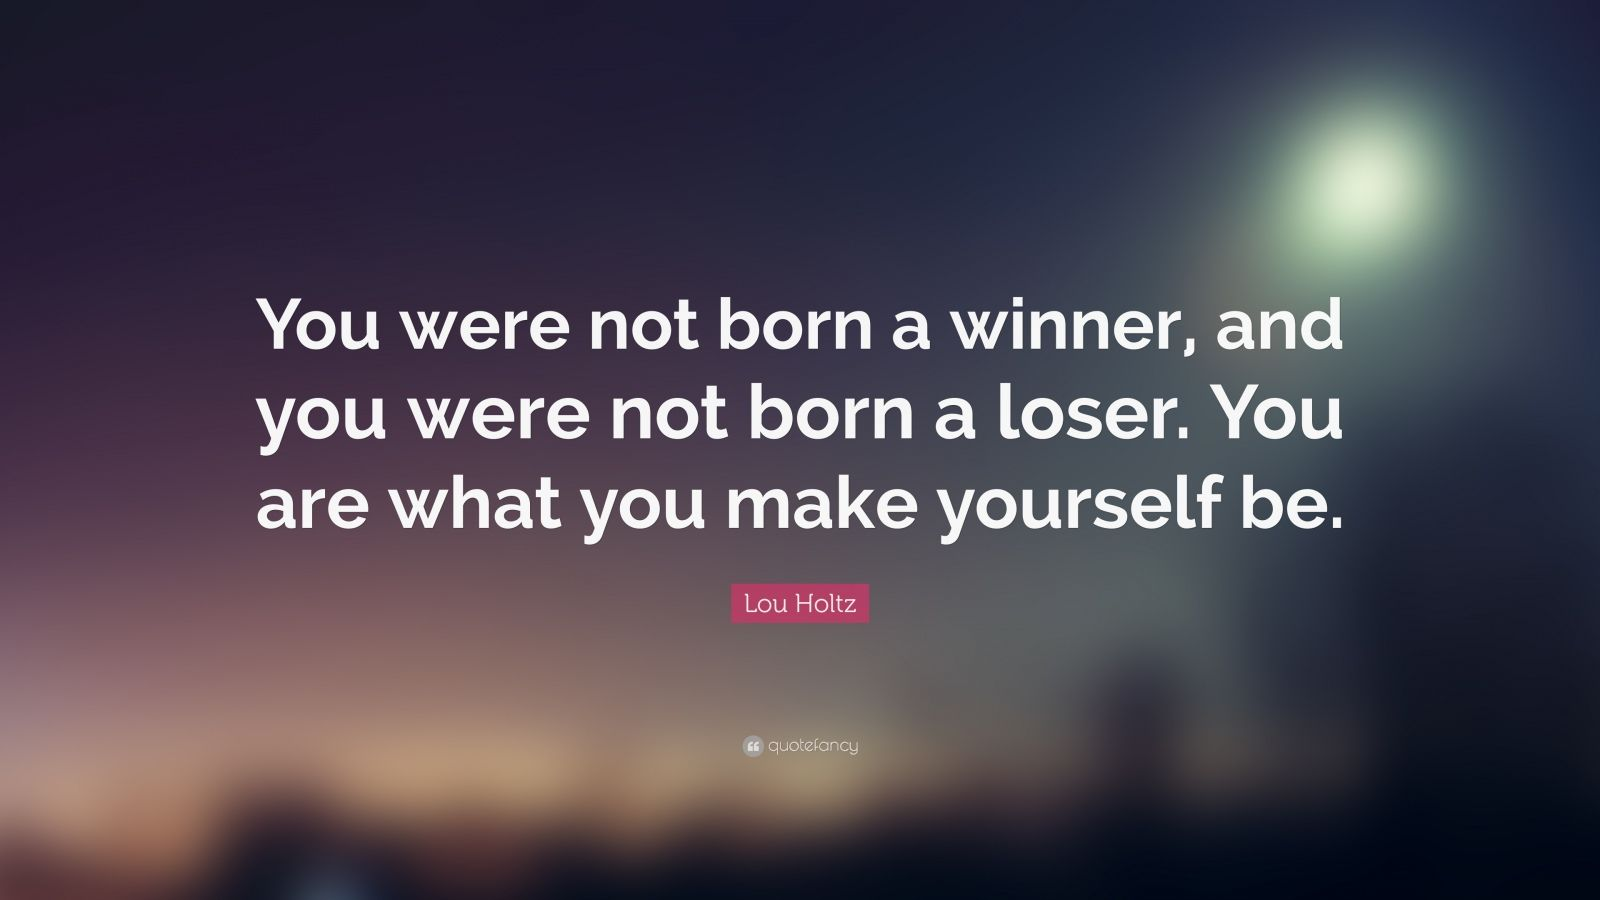 """Self Esteem Quotes: """"You were not born a winner, and you were not born a loser. You are what you make yourself be."""" — Lou Holtz"""